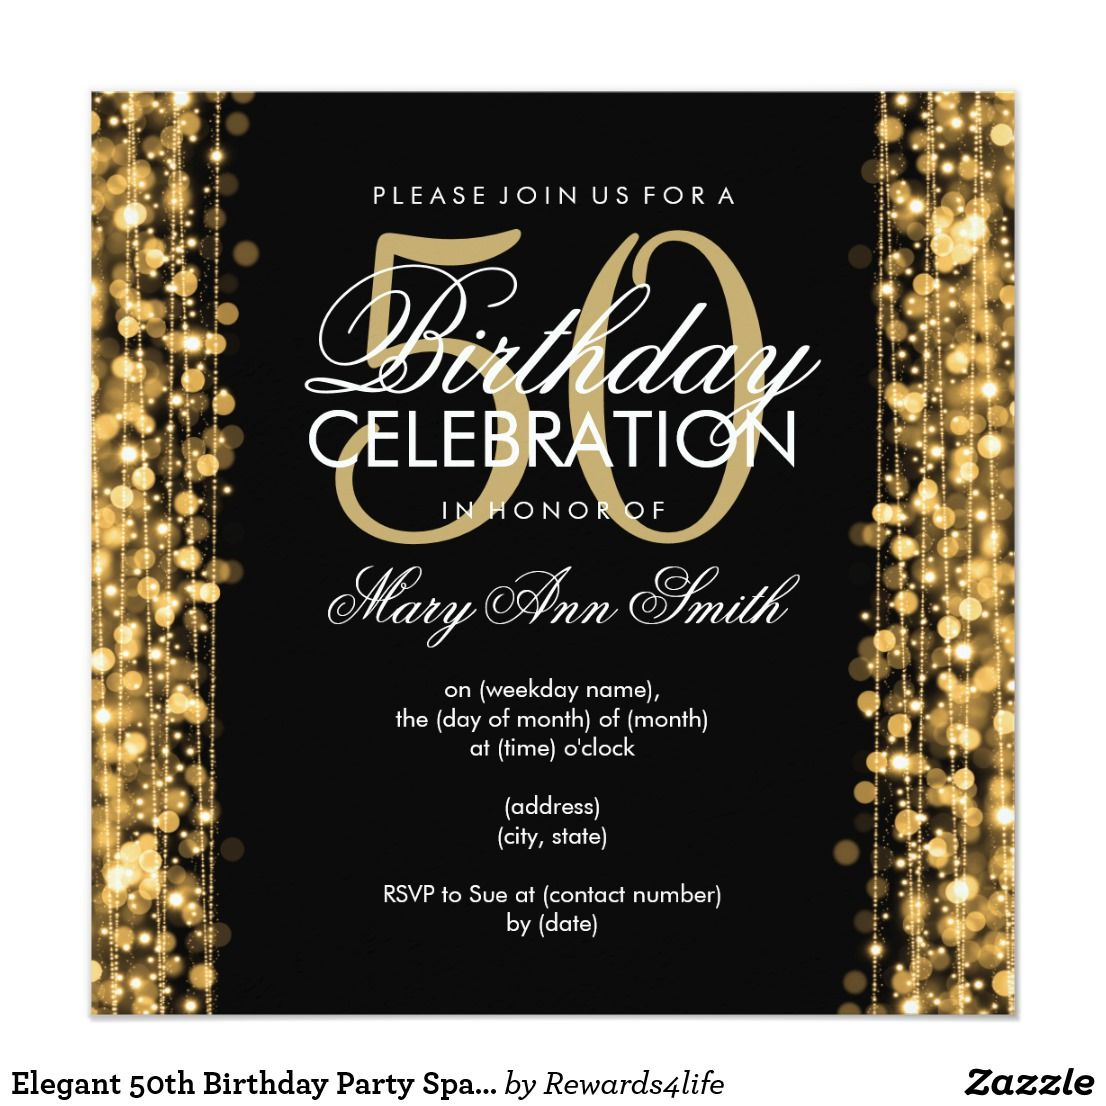 Elegant 50th Birthday Party Sparkles Gold Invitation In 2018 With Size 1106 X